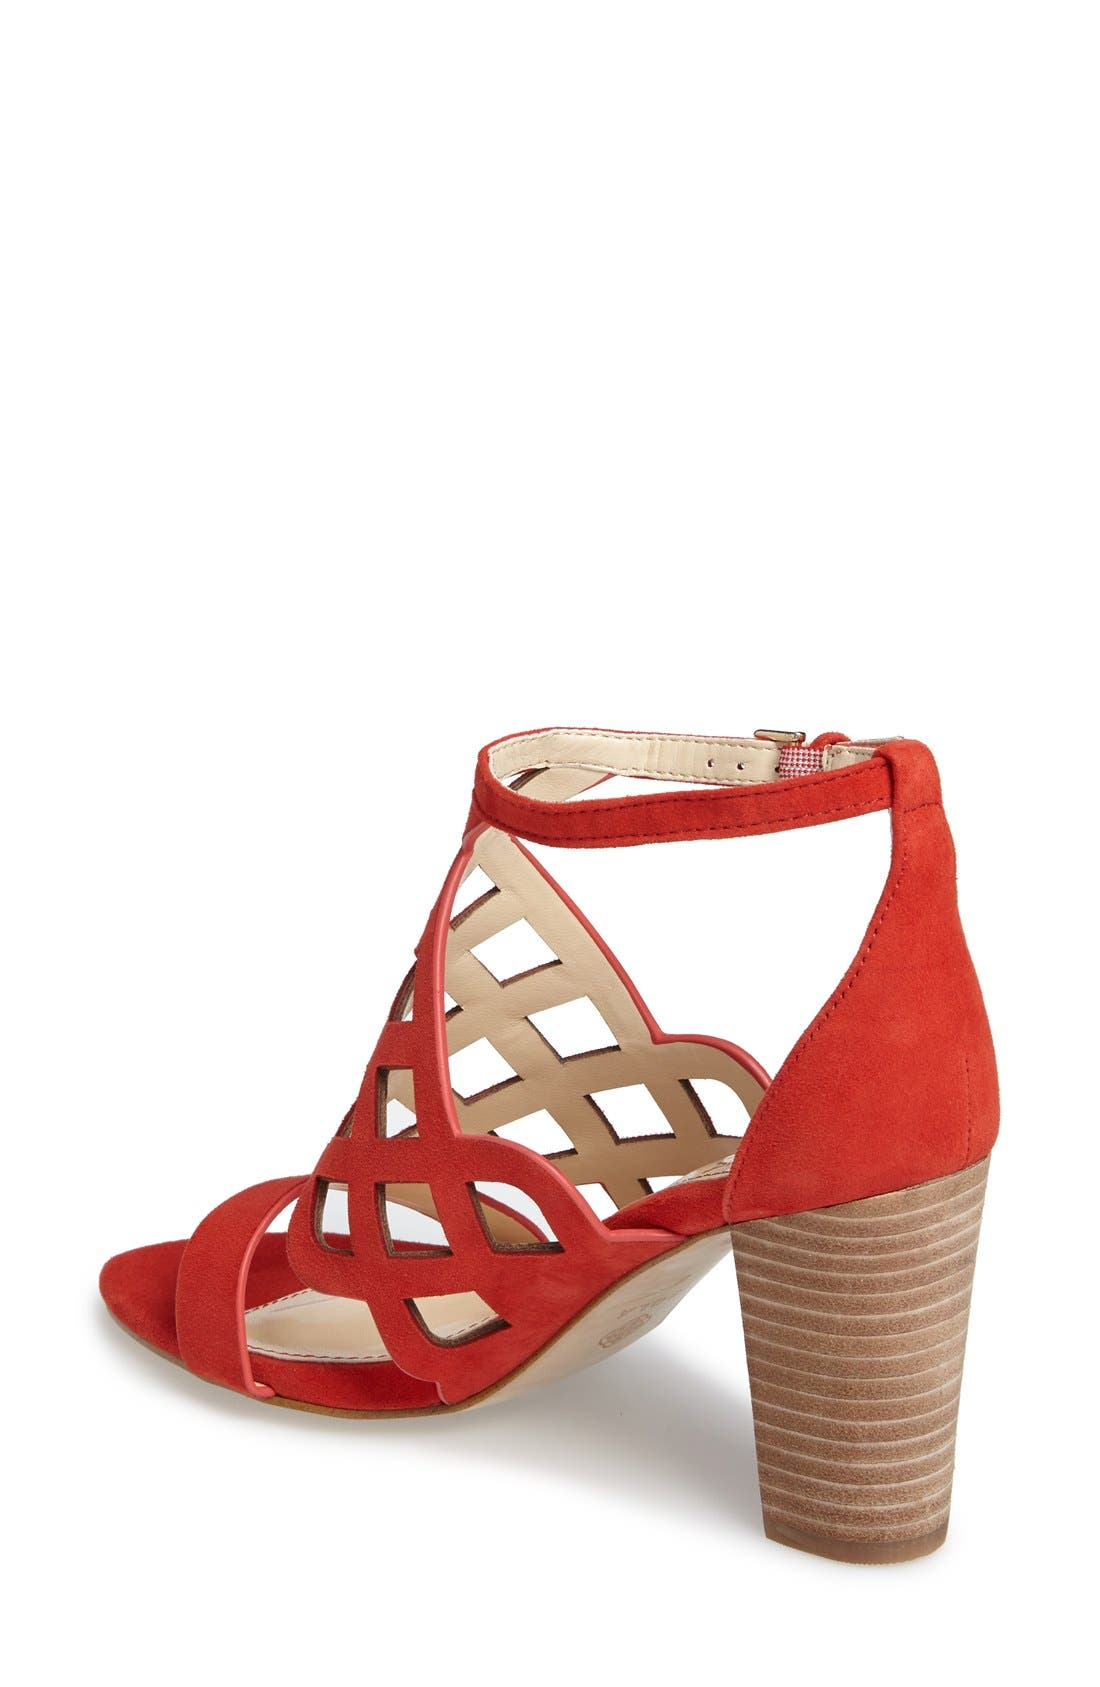 Despina Cutout Ankle Strap Sandal,                             Alternate thumbnail 7, color,                             LIPSTICK RED SUEDE